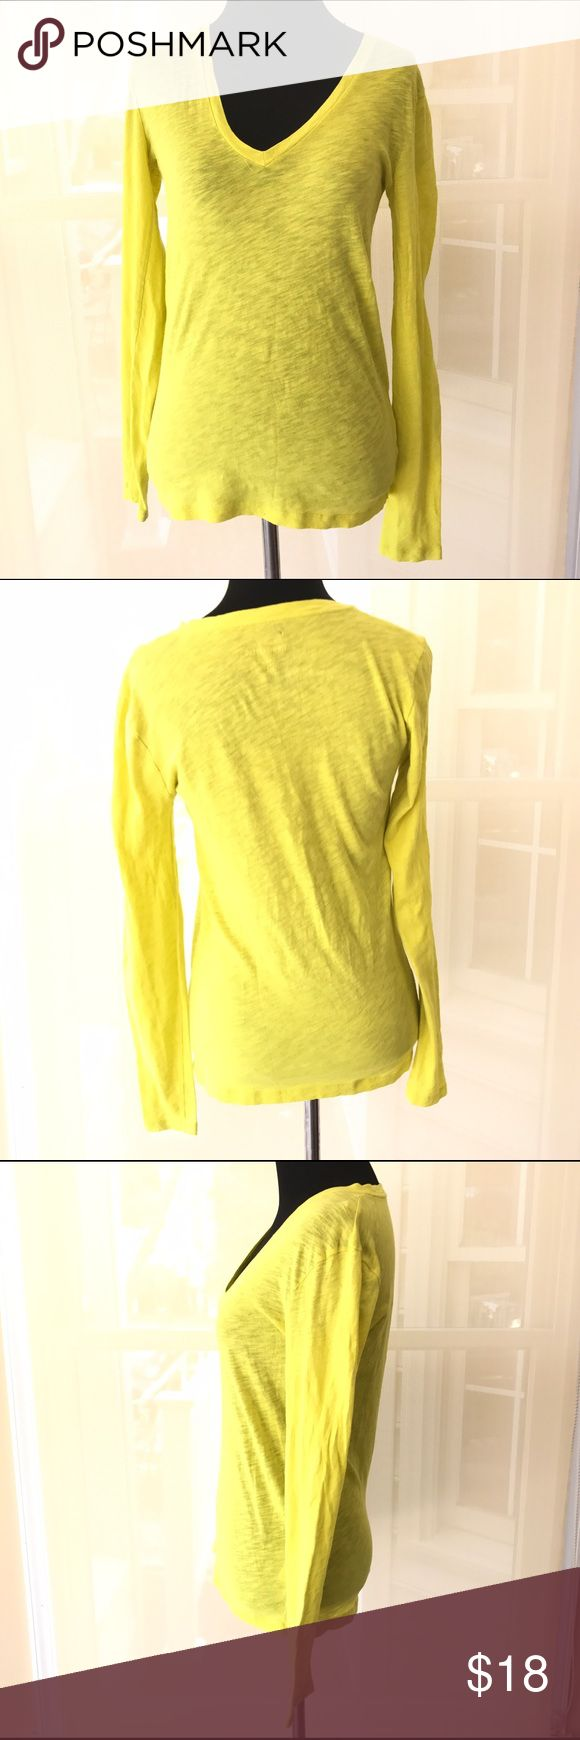 J CREW YELLOW LONG SLEEVE VINTAGE COTTON TOP SZ XS Good condition j crew yellow long sleeve top. Size XS. J. Crew Tops Tees - Long Sleeve